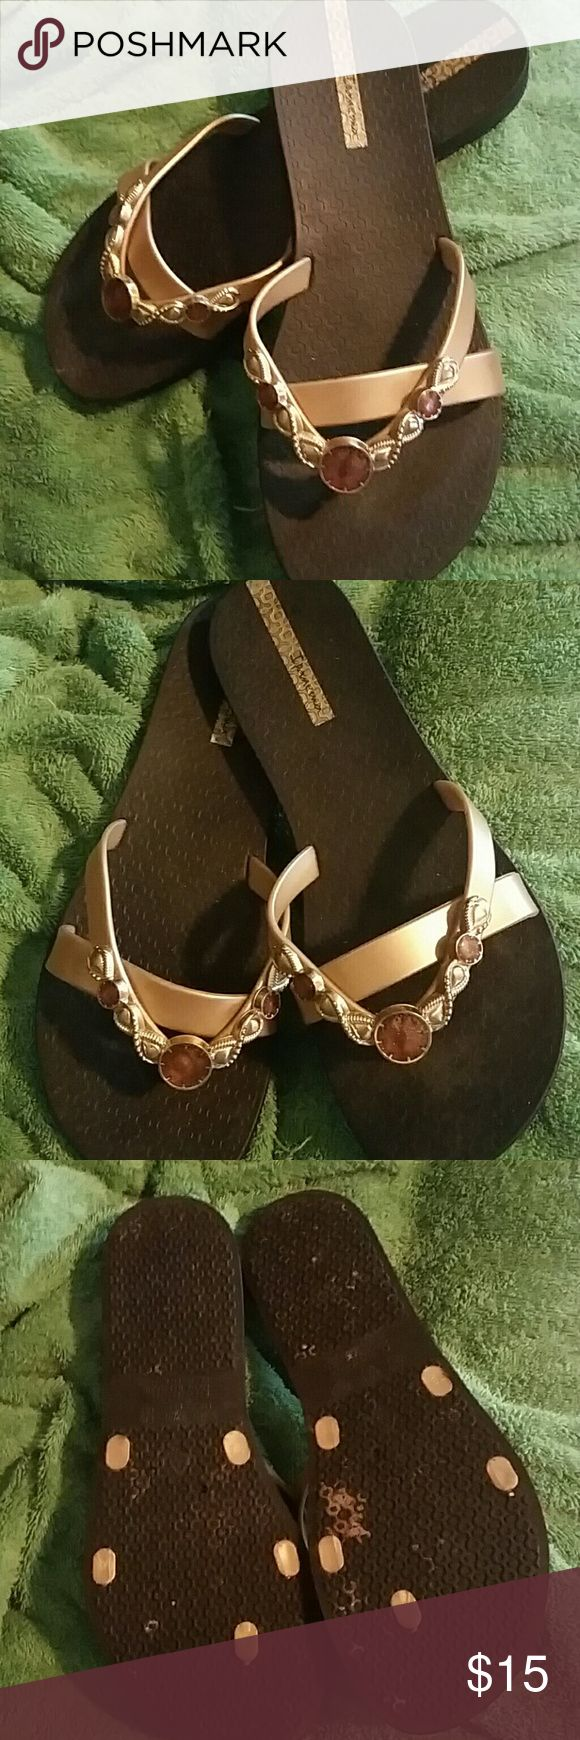 Ipanema Brown & Gold Dressy Flip Flops Gently used. Will be cleaned and sterilized upon purchase. Gold & brown colors with details great for dressing up any outfit. Very comfortable wear. Made in Brazil. Size 8-9. Pet friendly home. Ipanema  Shoes Sandals